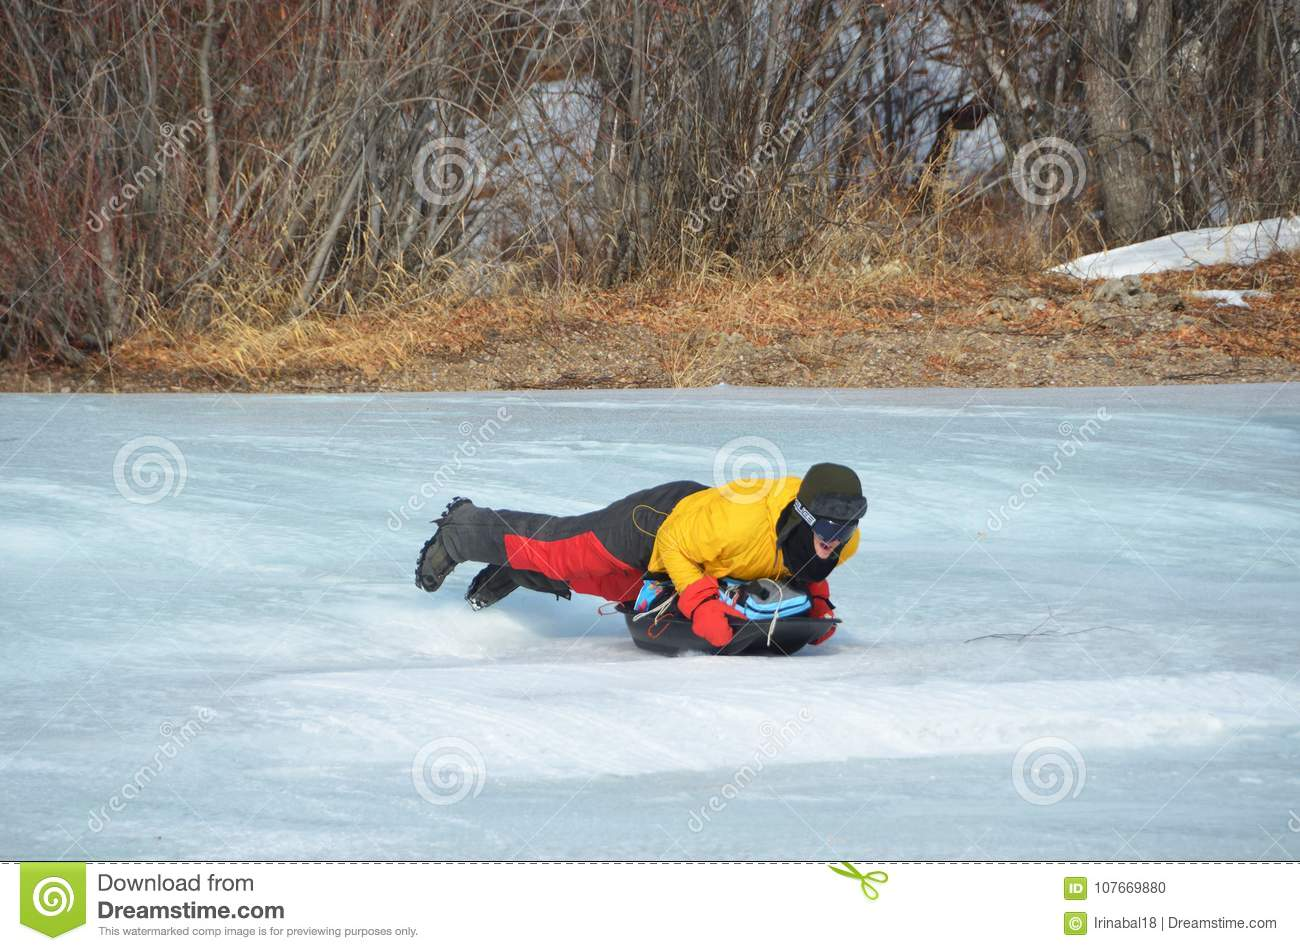 Baikal lake, Russia, March, 01, 2017. Tourist riding on a sled sledges MS icy shores of lake Baikal